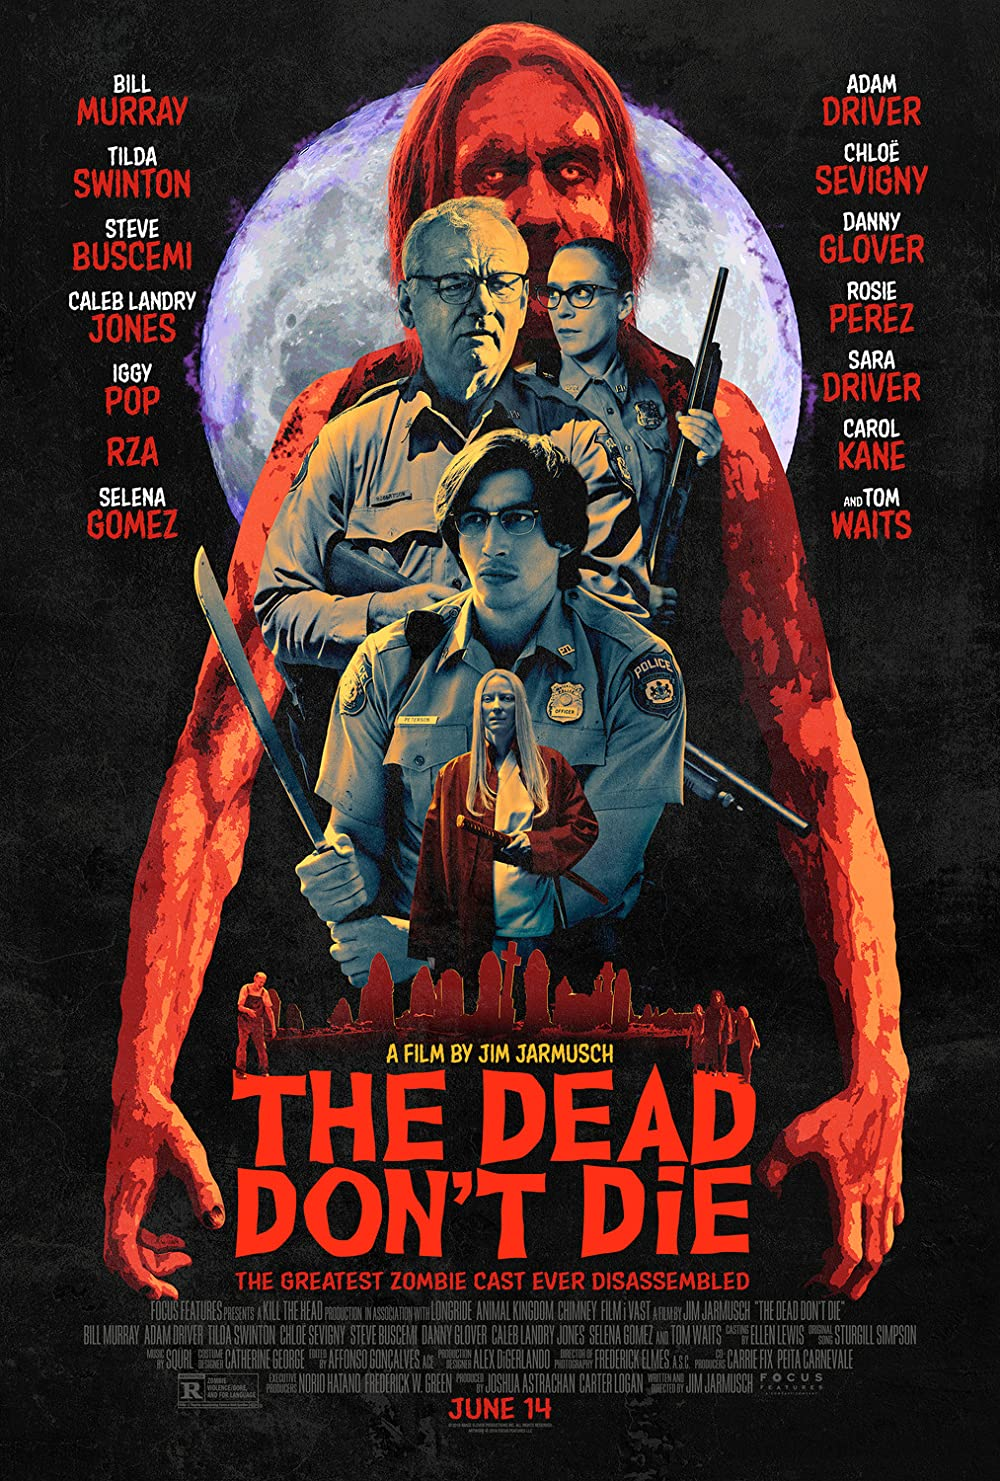 The Dead Dont Die 2019 Hindi ORG Dual Audio 1080p BluRay ESubs 1.8GB